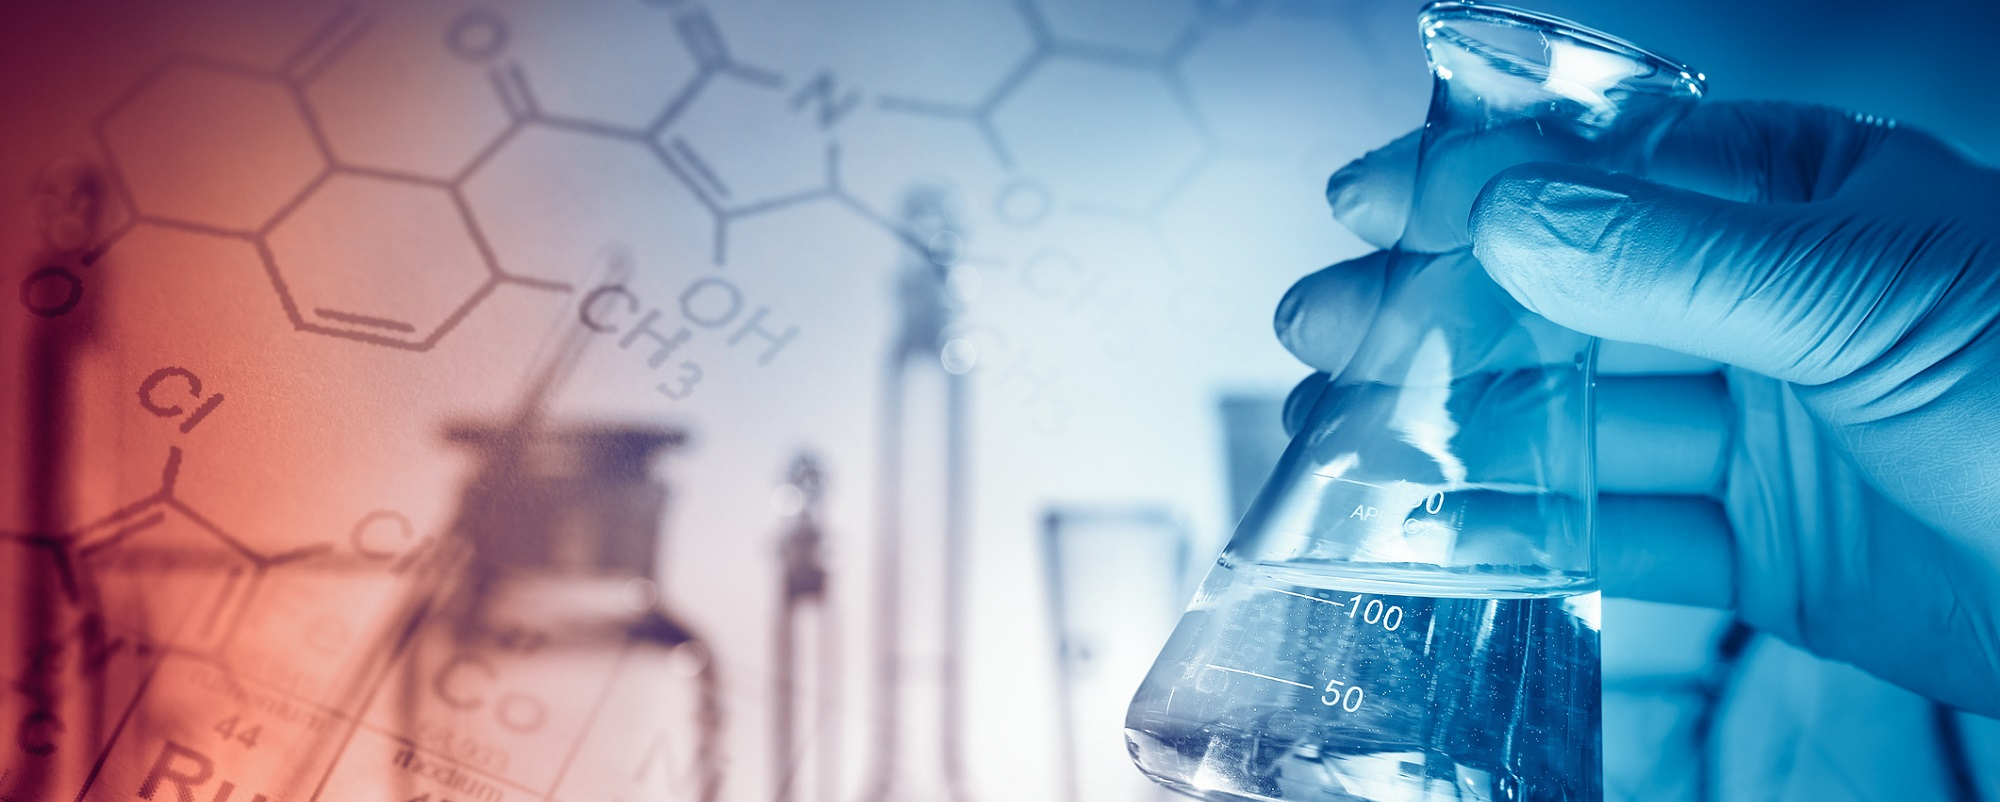 HPLC versus UHPLC: An evolutionary step to address speed versus resolution